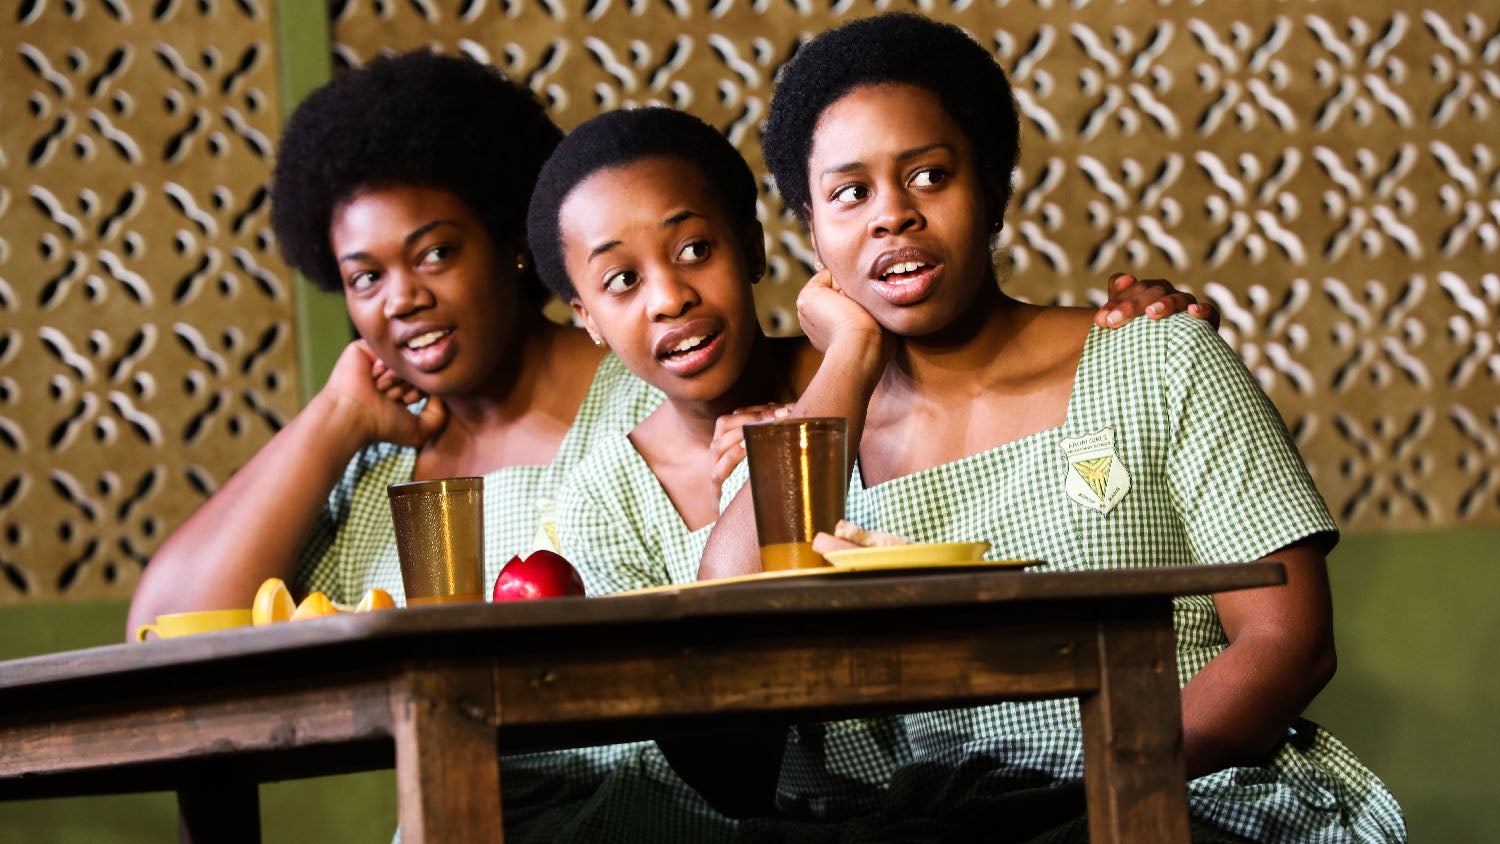 Why 'School Girls' Is the Most Important Play Off BroadwayRight Now